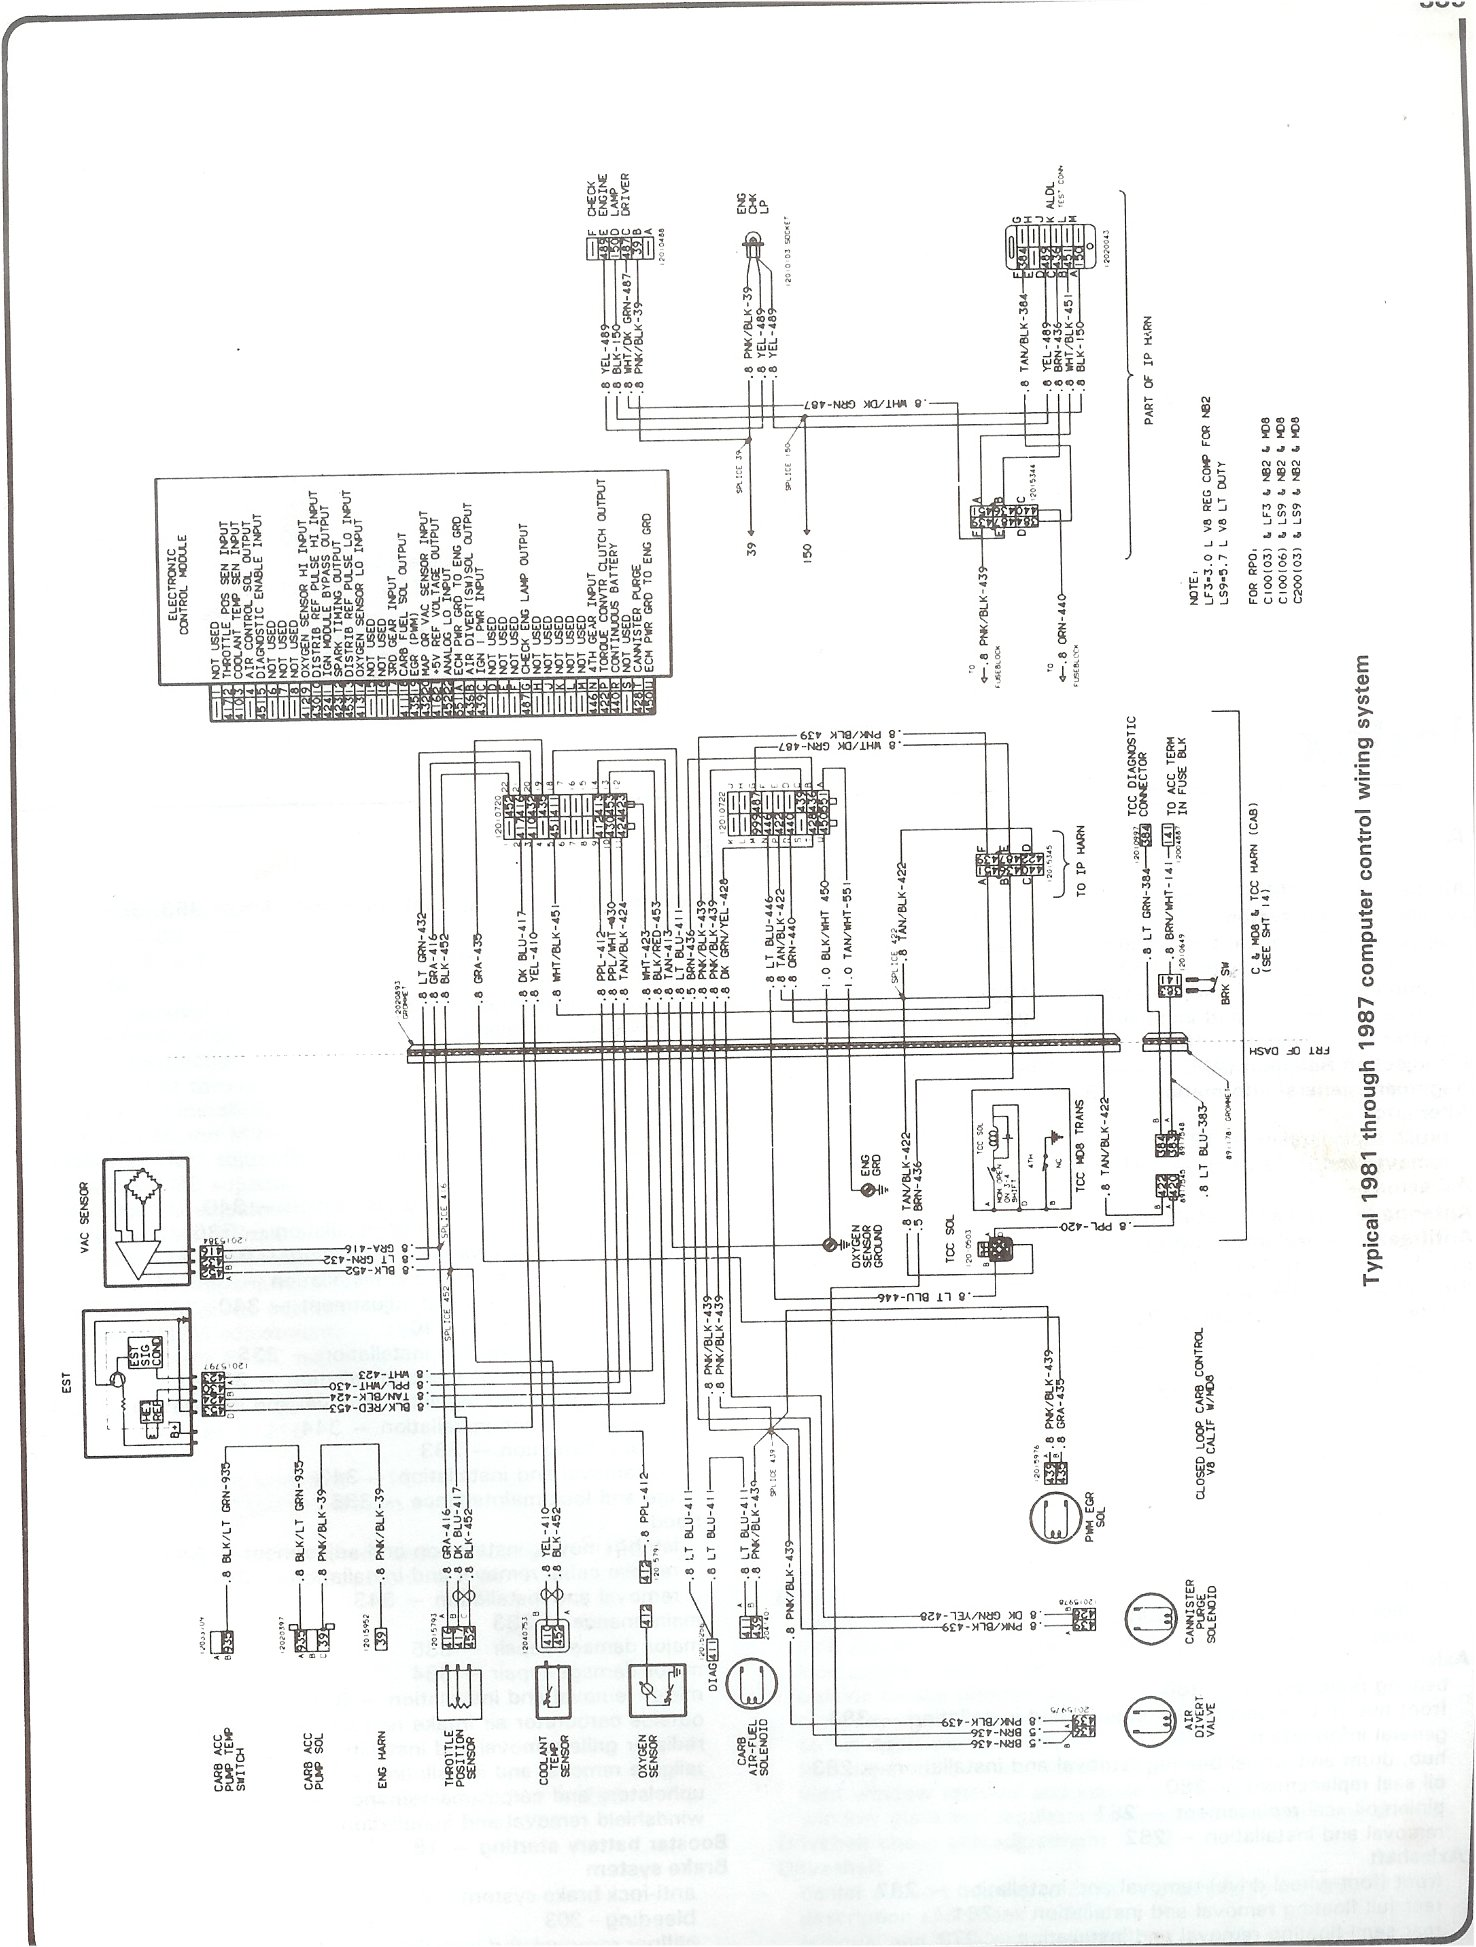 Complete 73 87 Wiring Diagrams Camaro 1987 Cooling Fan Diagram 81 Computer Control